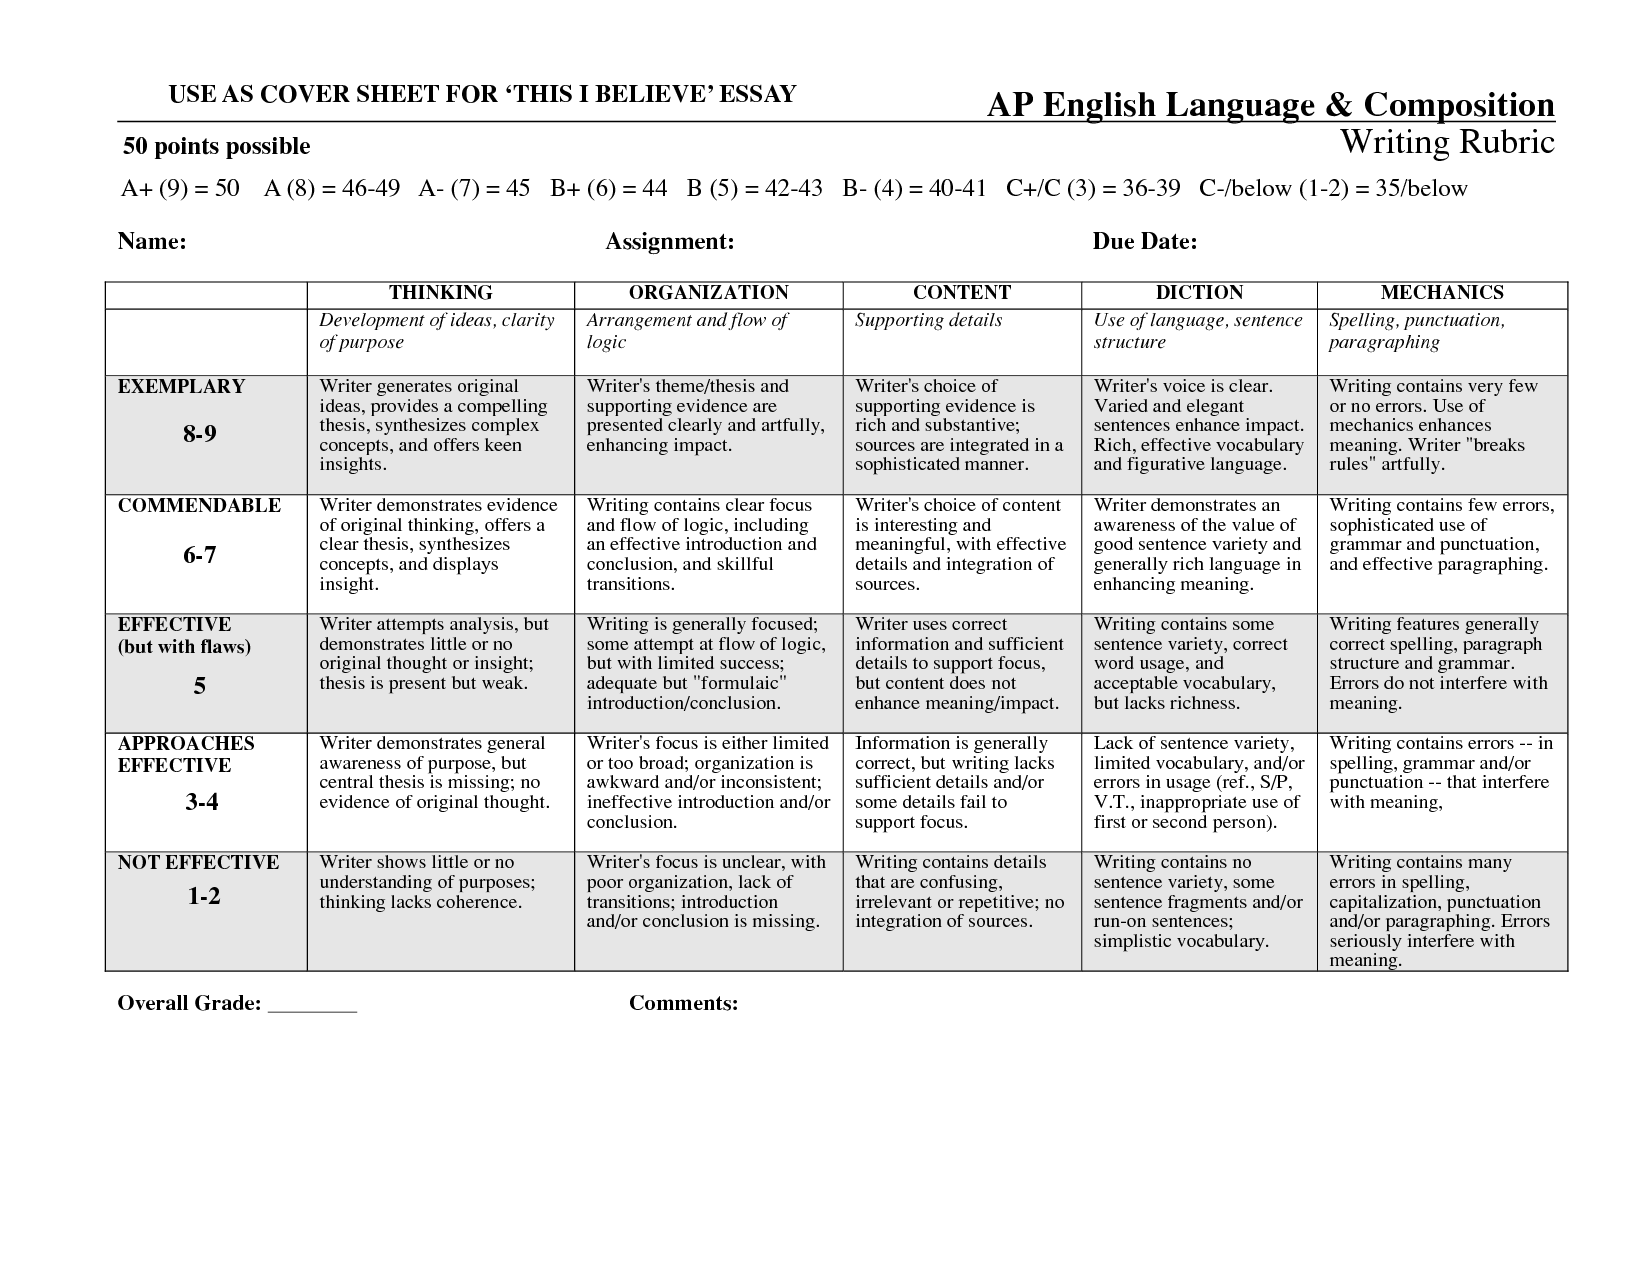 ap composition and literature essay rubric New rubrics for 2017-18 for dbq how to write an essay and long essay ap history writing rubrics functions of literature review in research pdf ap us read exam.